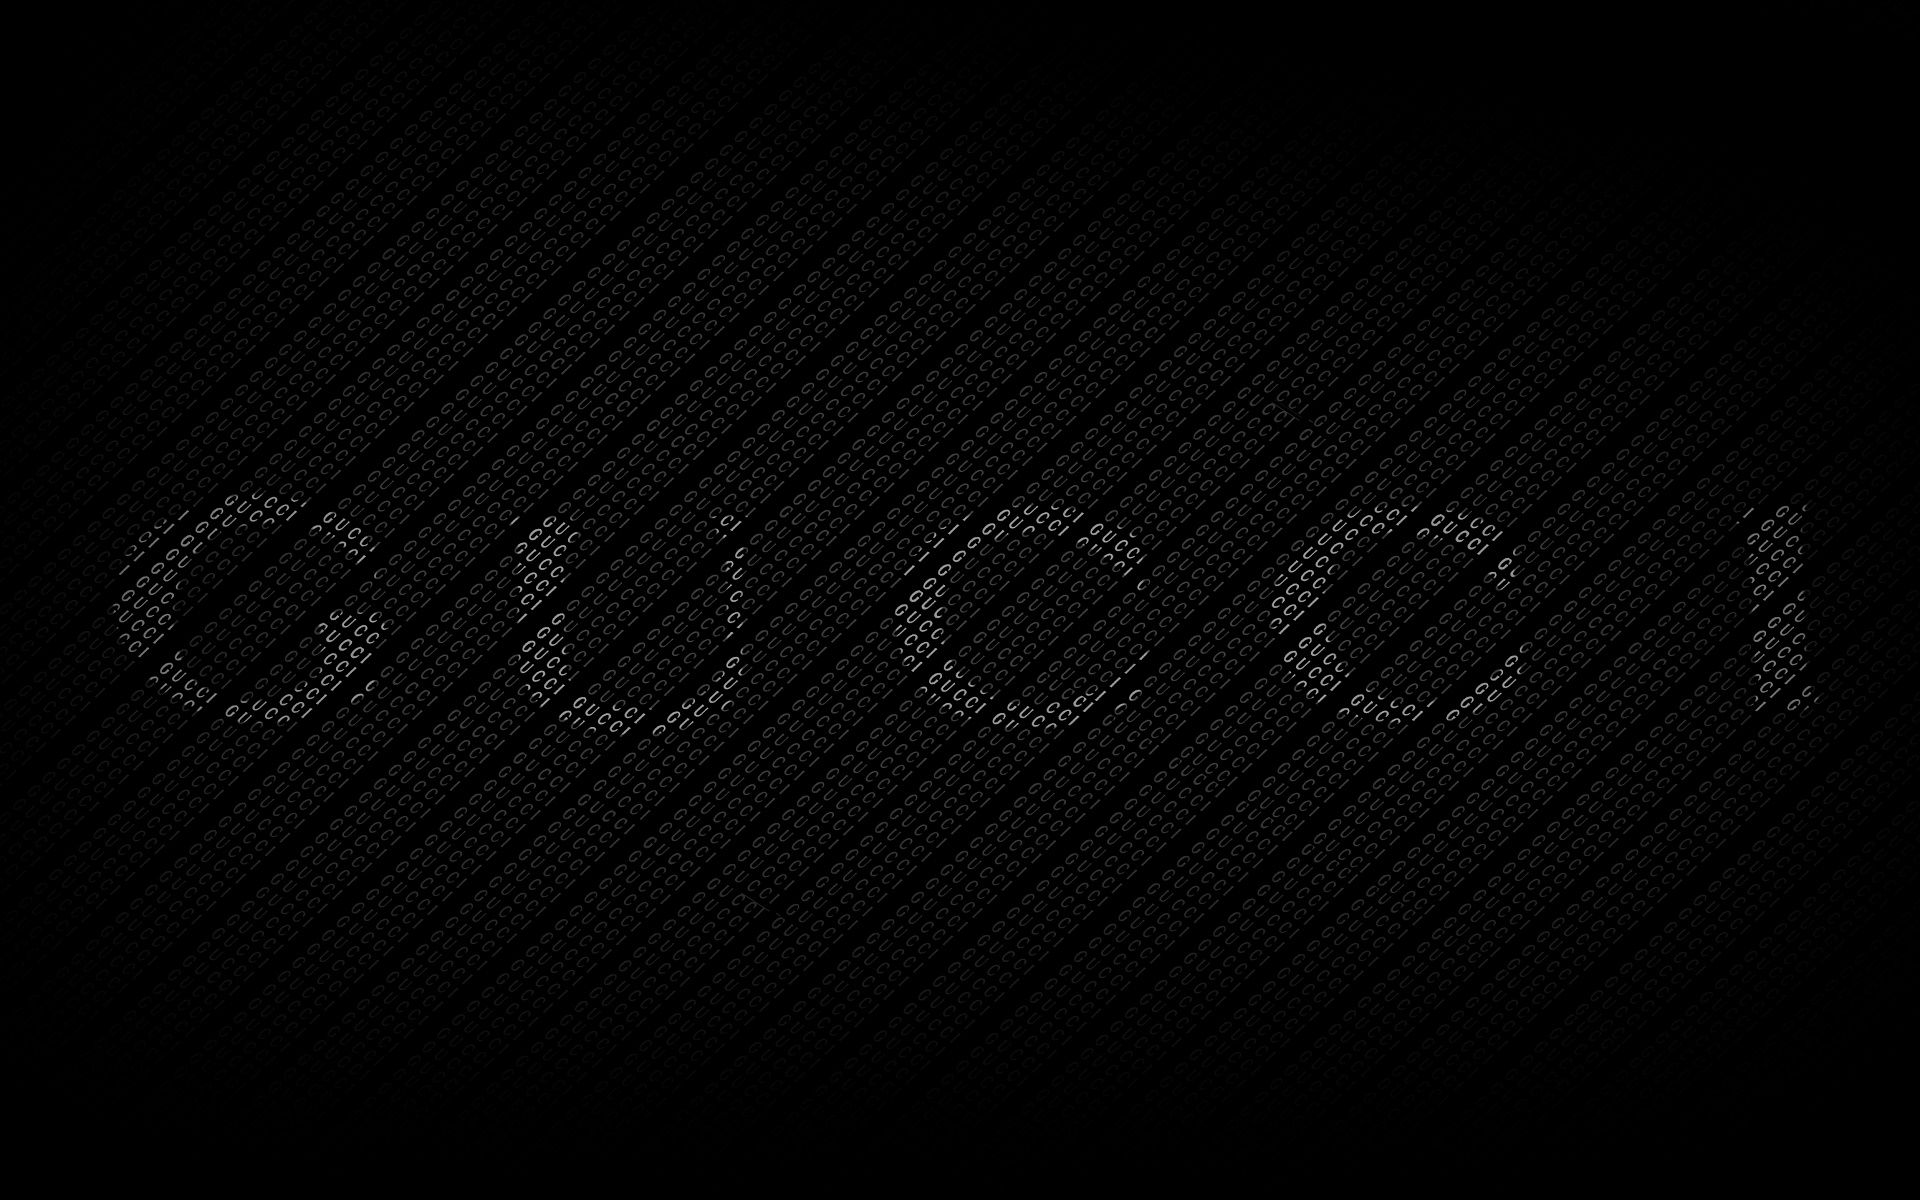 Gucci Wallpapers HD Laptop wallpaper desktop wallpapers